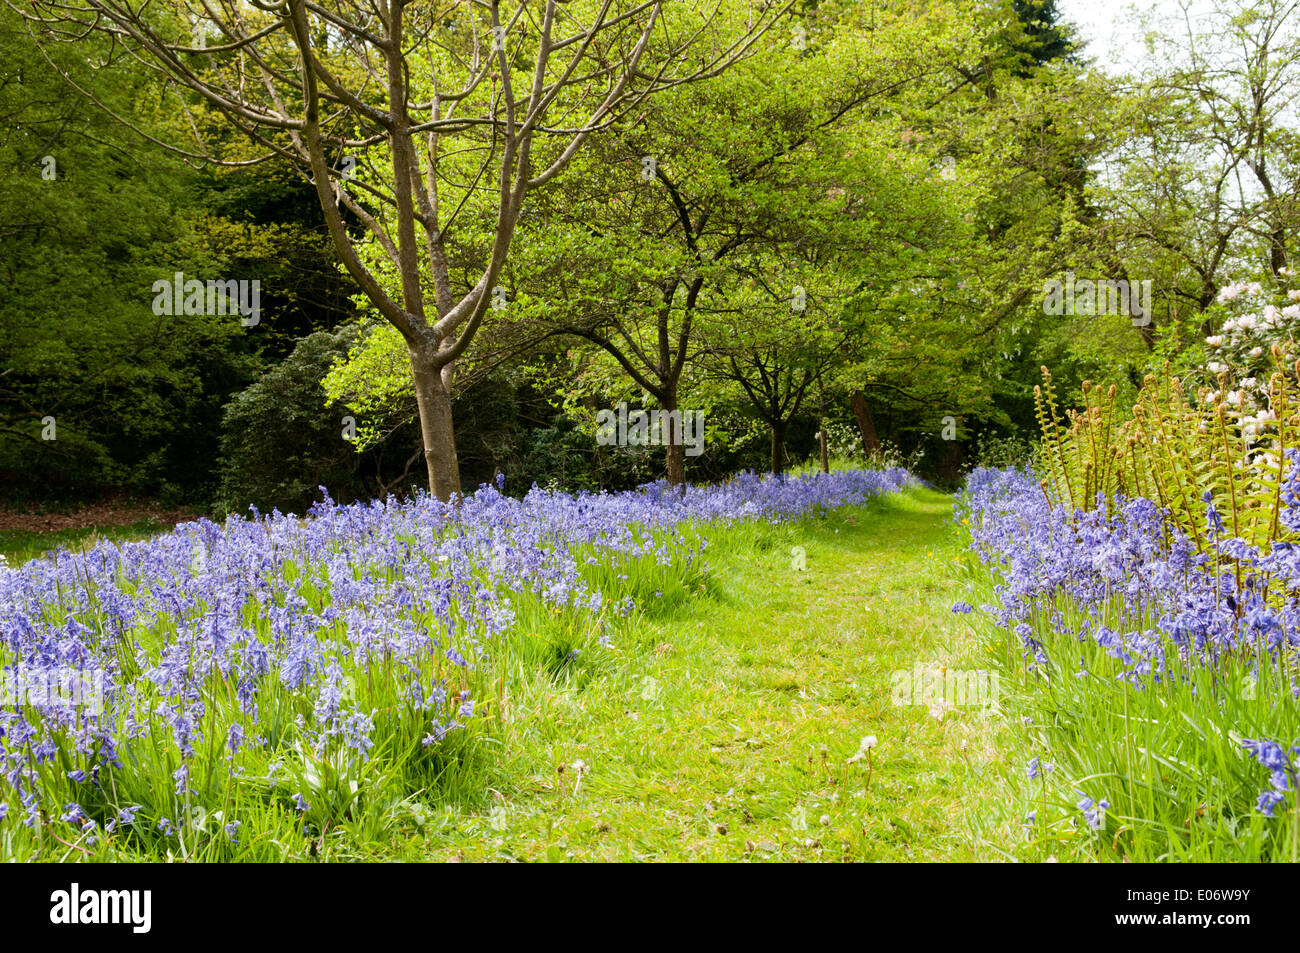 Bluebell walk in National Trust gardens at Wightwick Manor, Wolverhampton, in spring - Stock Image